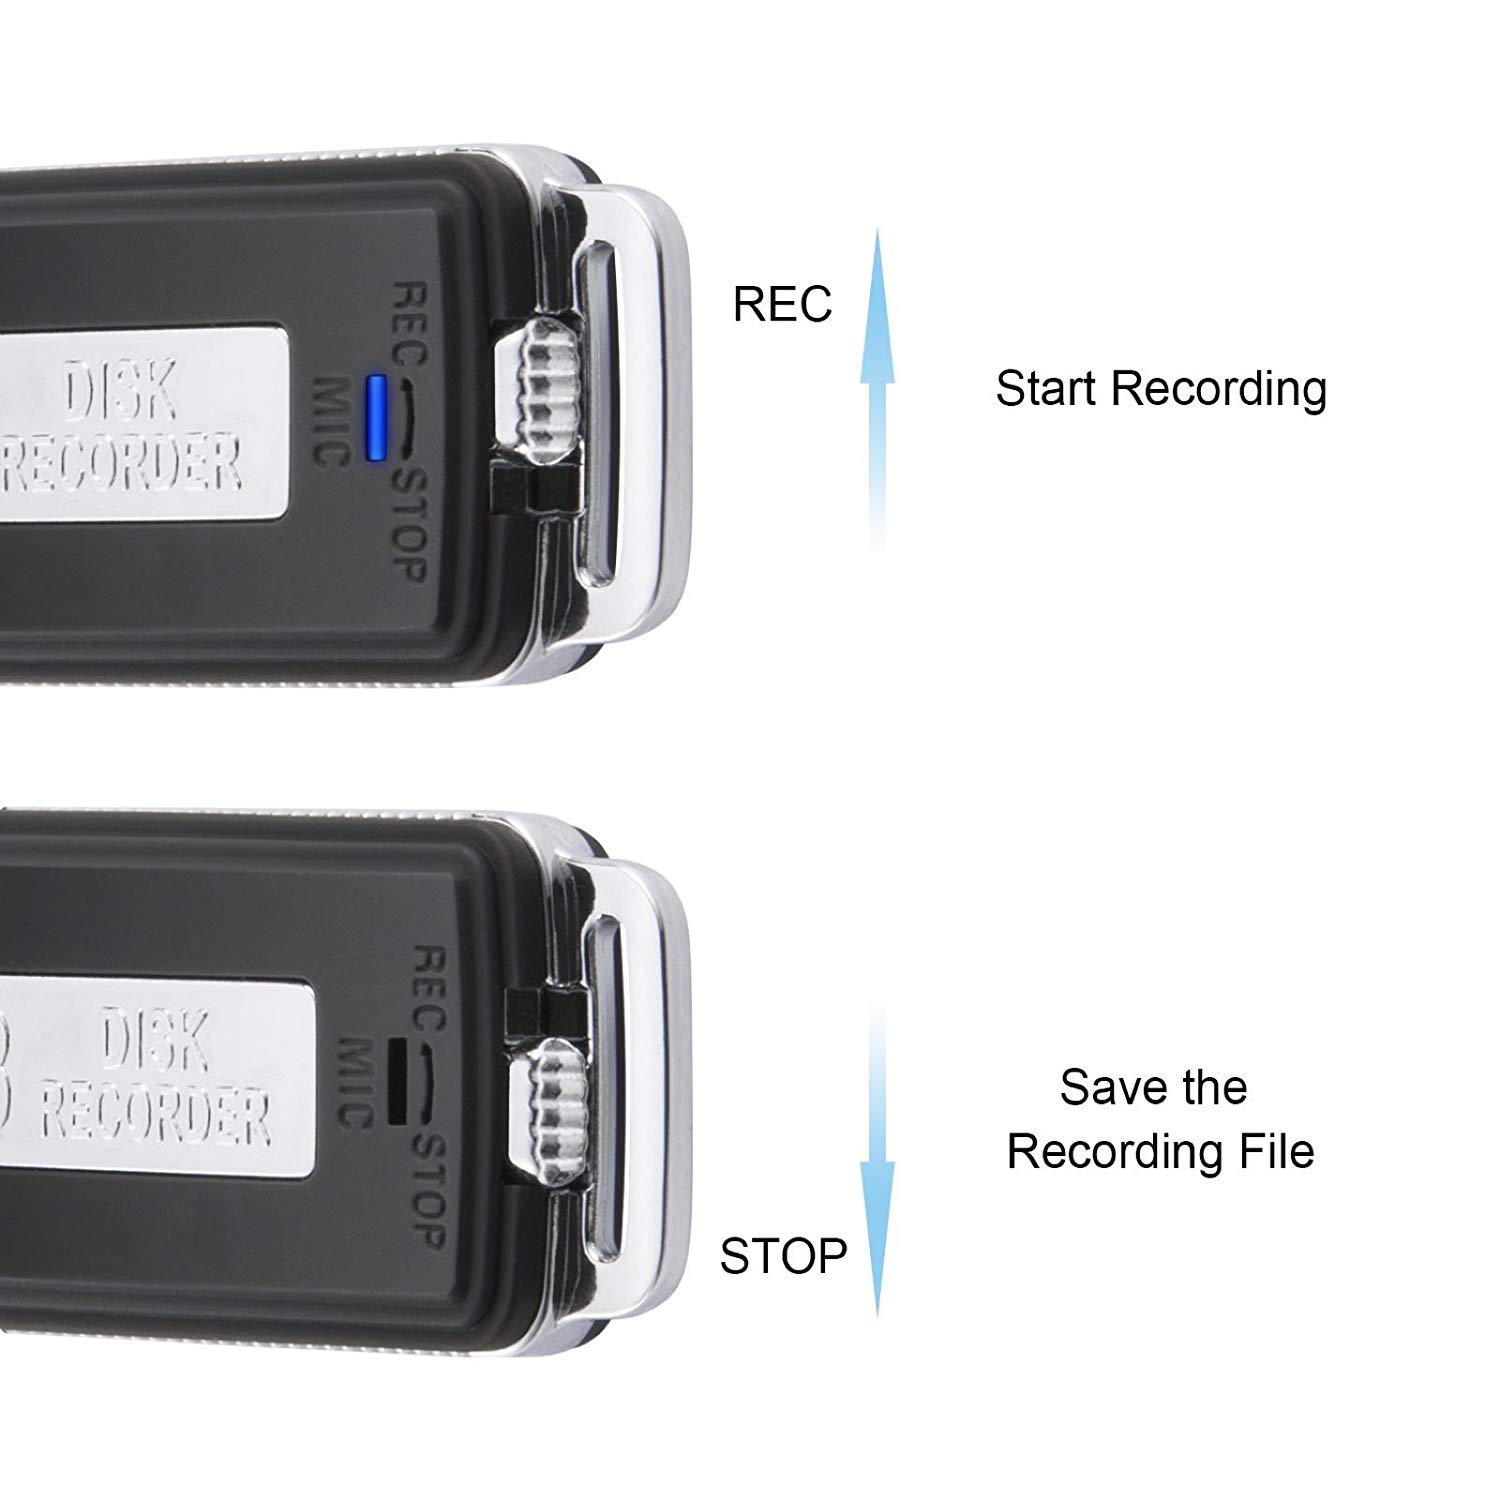 Meetings 8 GB Voice Recorder Rechargeable Mini USB Voice Recorder USB Flash Drive Voice Activated Recorder Dictaphone 15 Hours Battery Life 150 Hours File Capacity for Playback Lectures Interviews